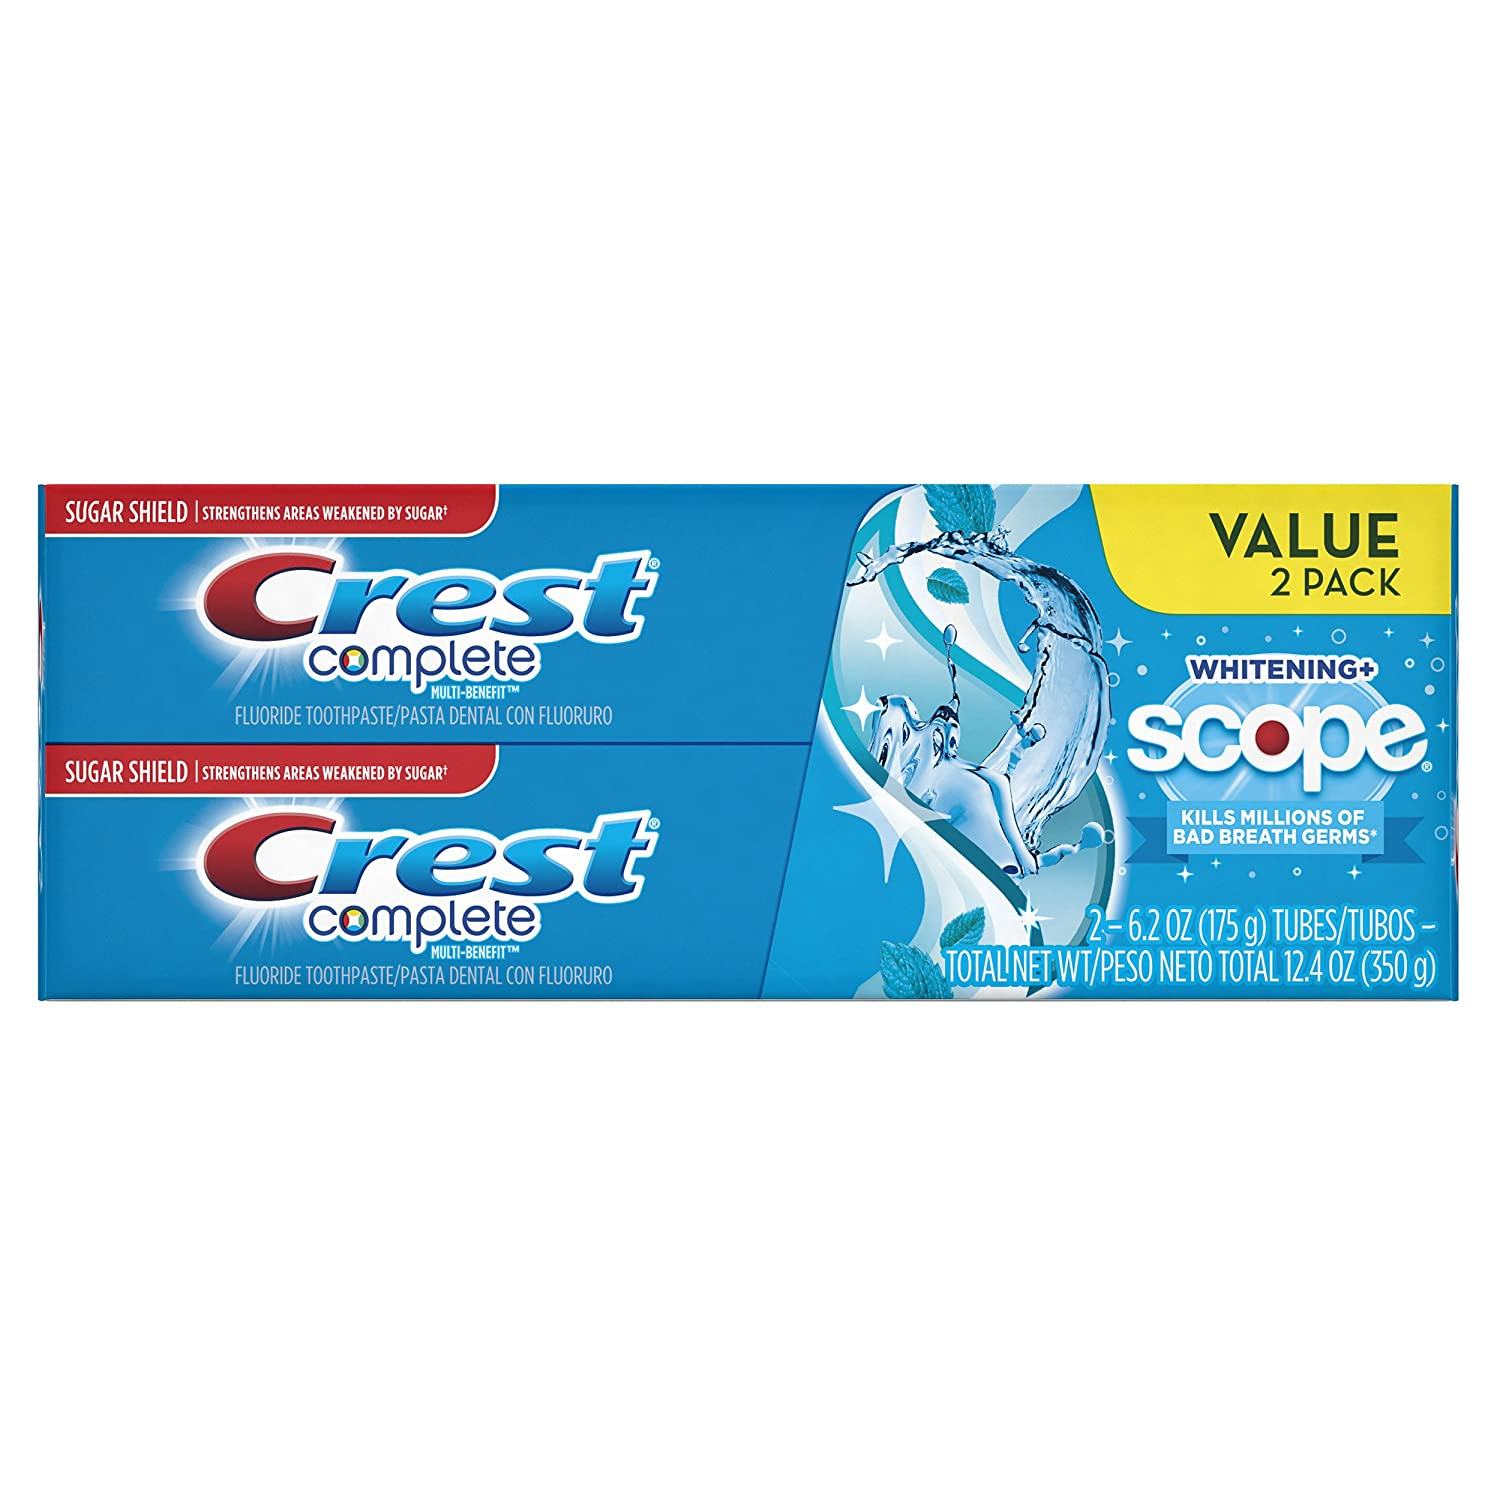 Amazon.com: Crest Complete pasta dental, sabor menta (2 ...